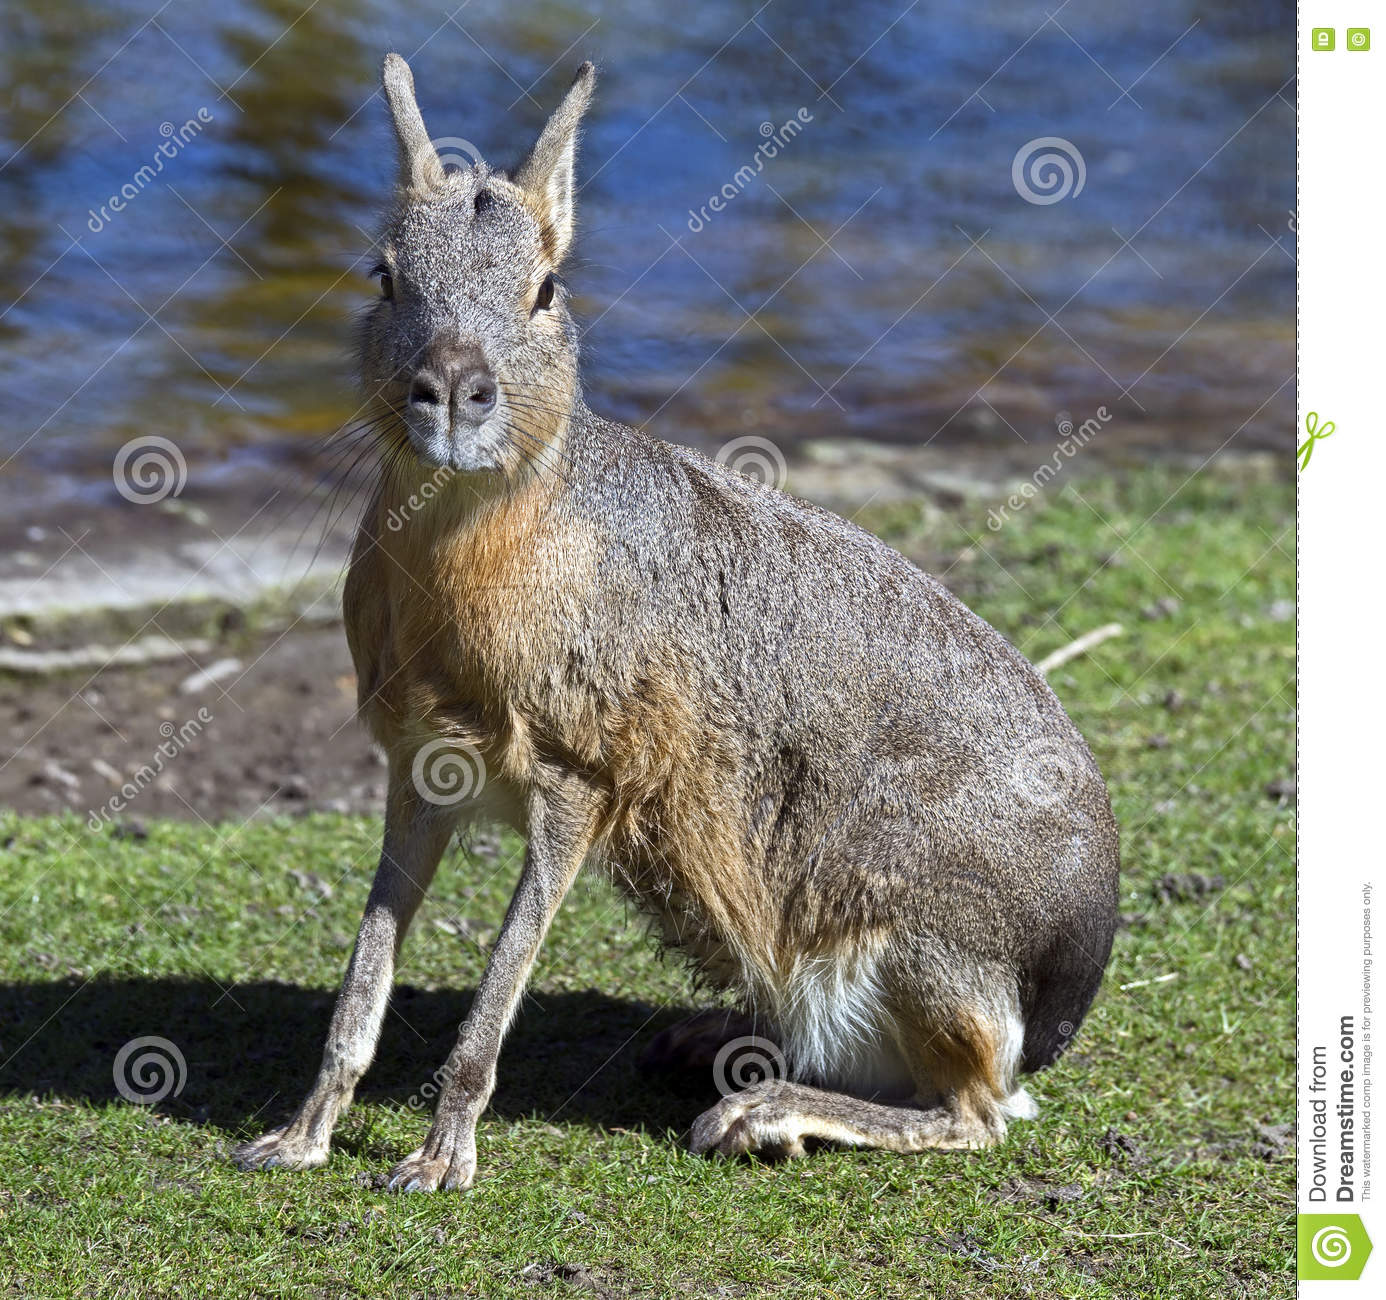 Cavy Patagonian